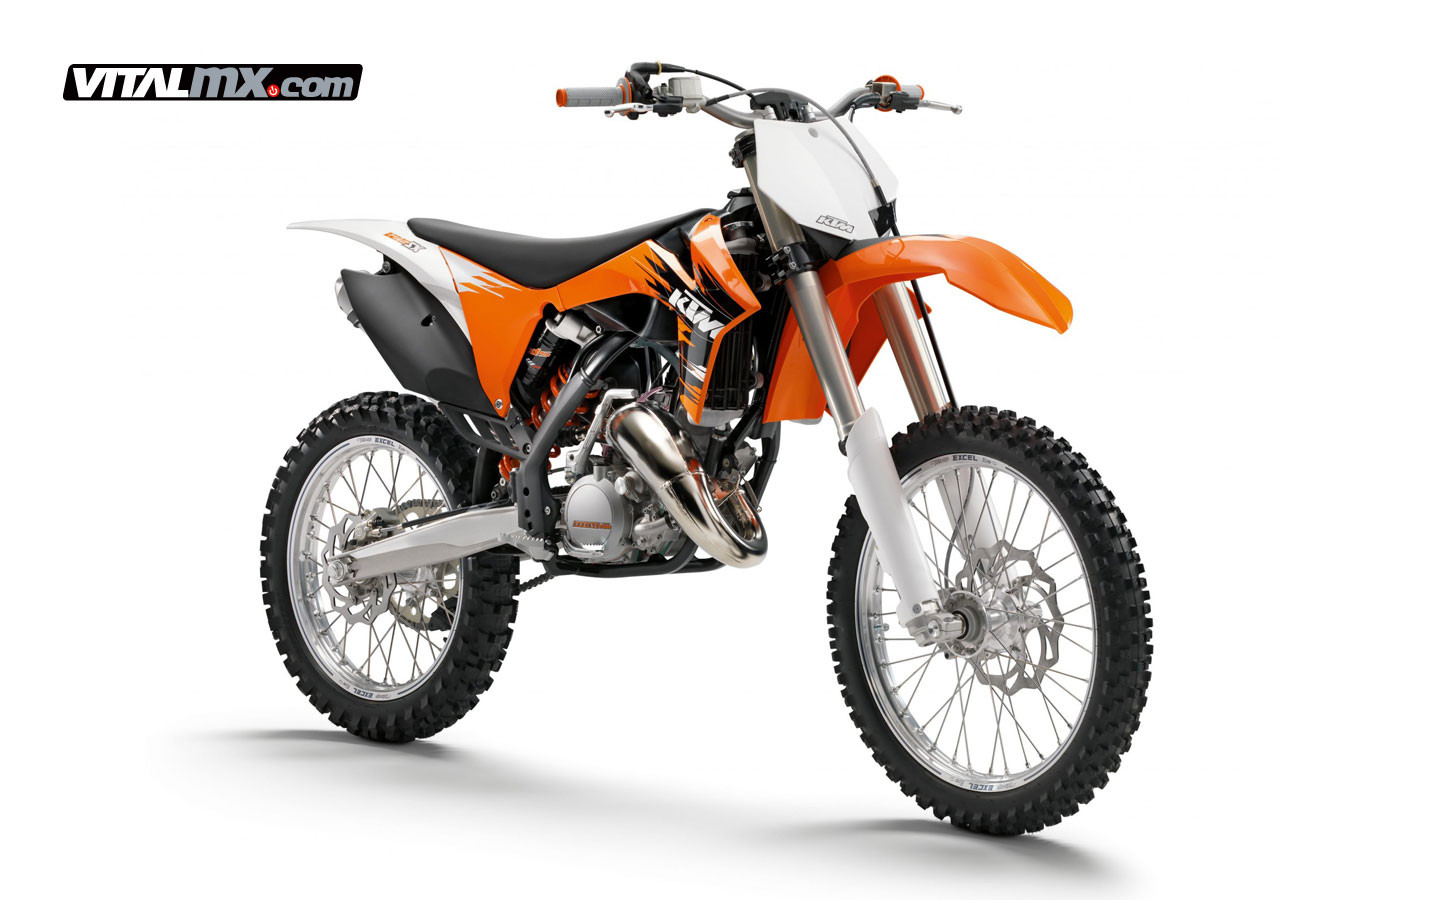 2011 ktm 125 sx 2011 ktm wallpapers motocross pictures. Black Bedroom Furniture Sets. Home Design Ideas